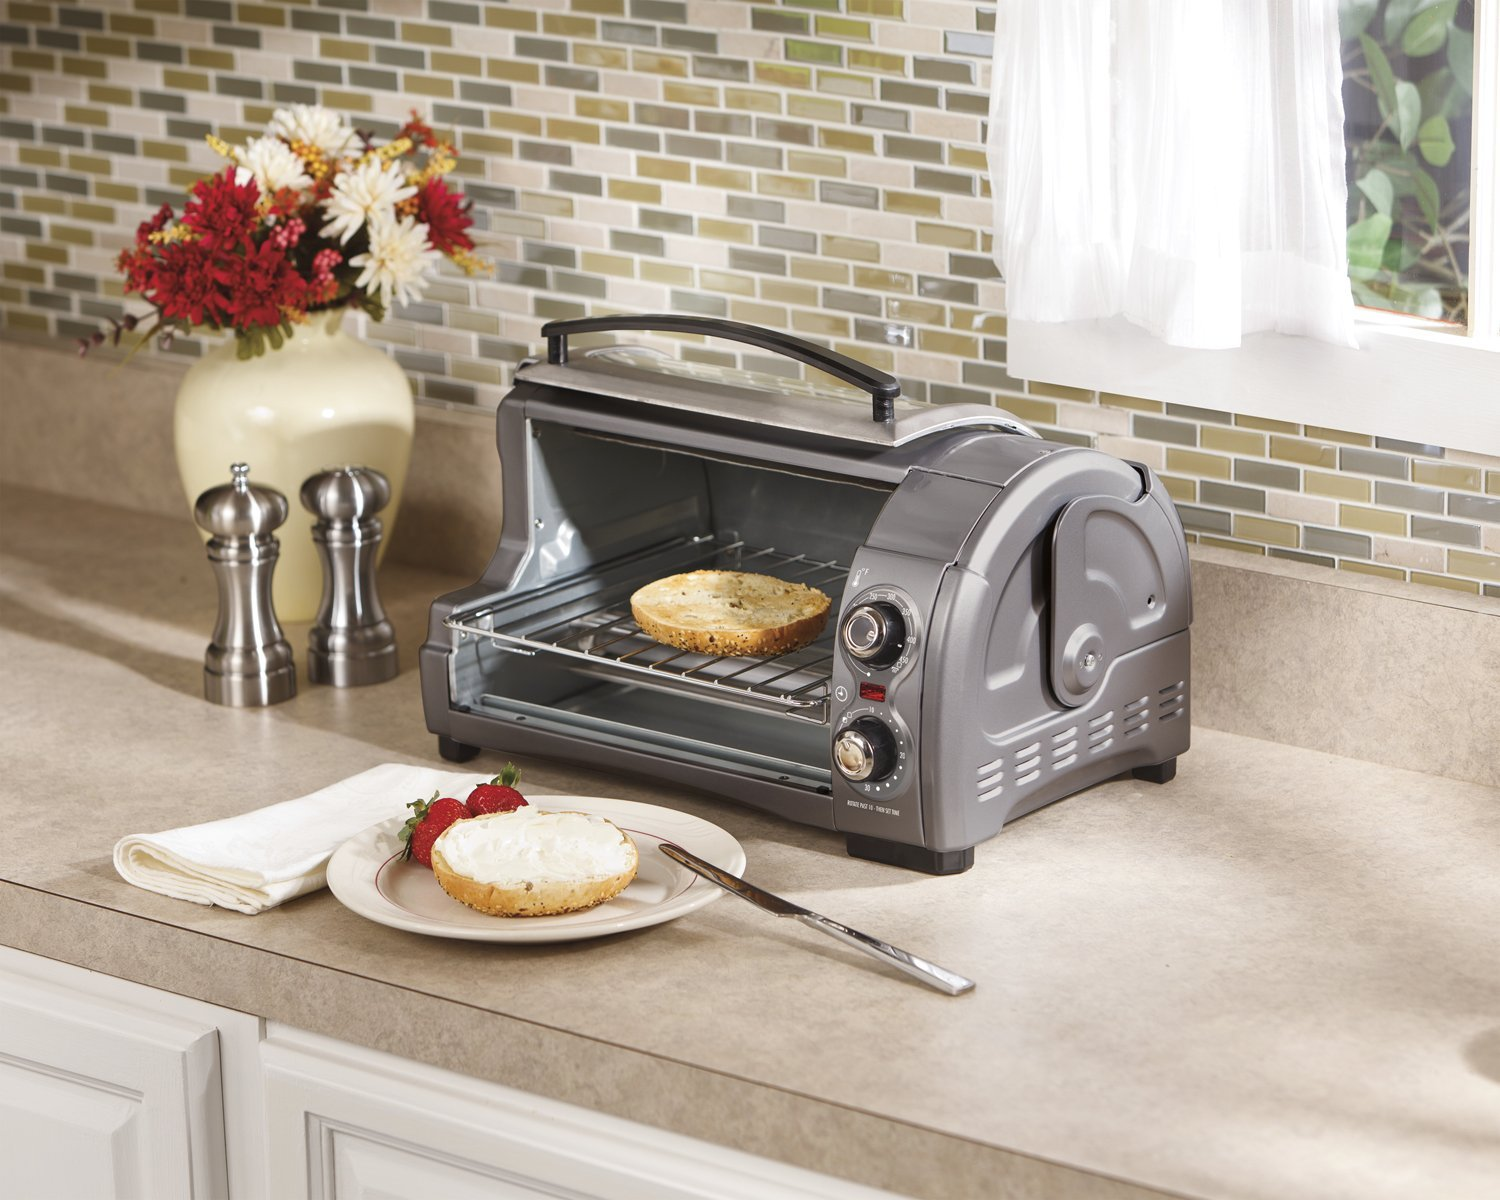 Hamilton Beach Easy Reach Toaster Oven Great For Tight